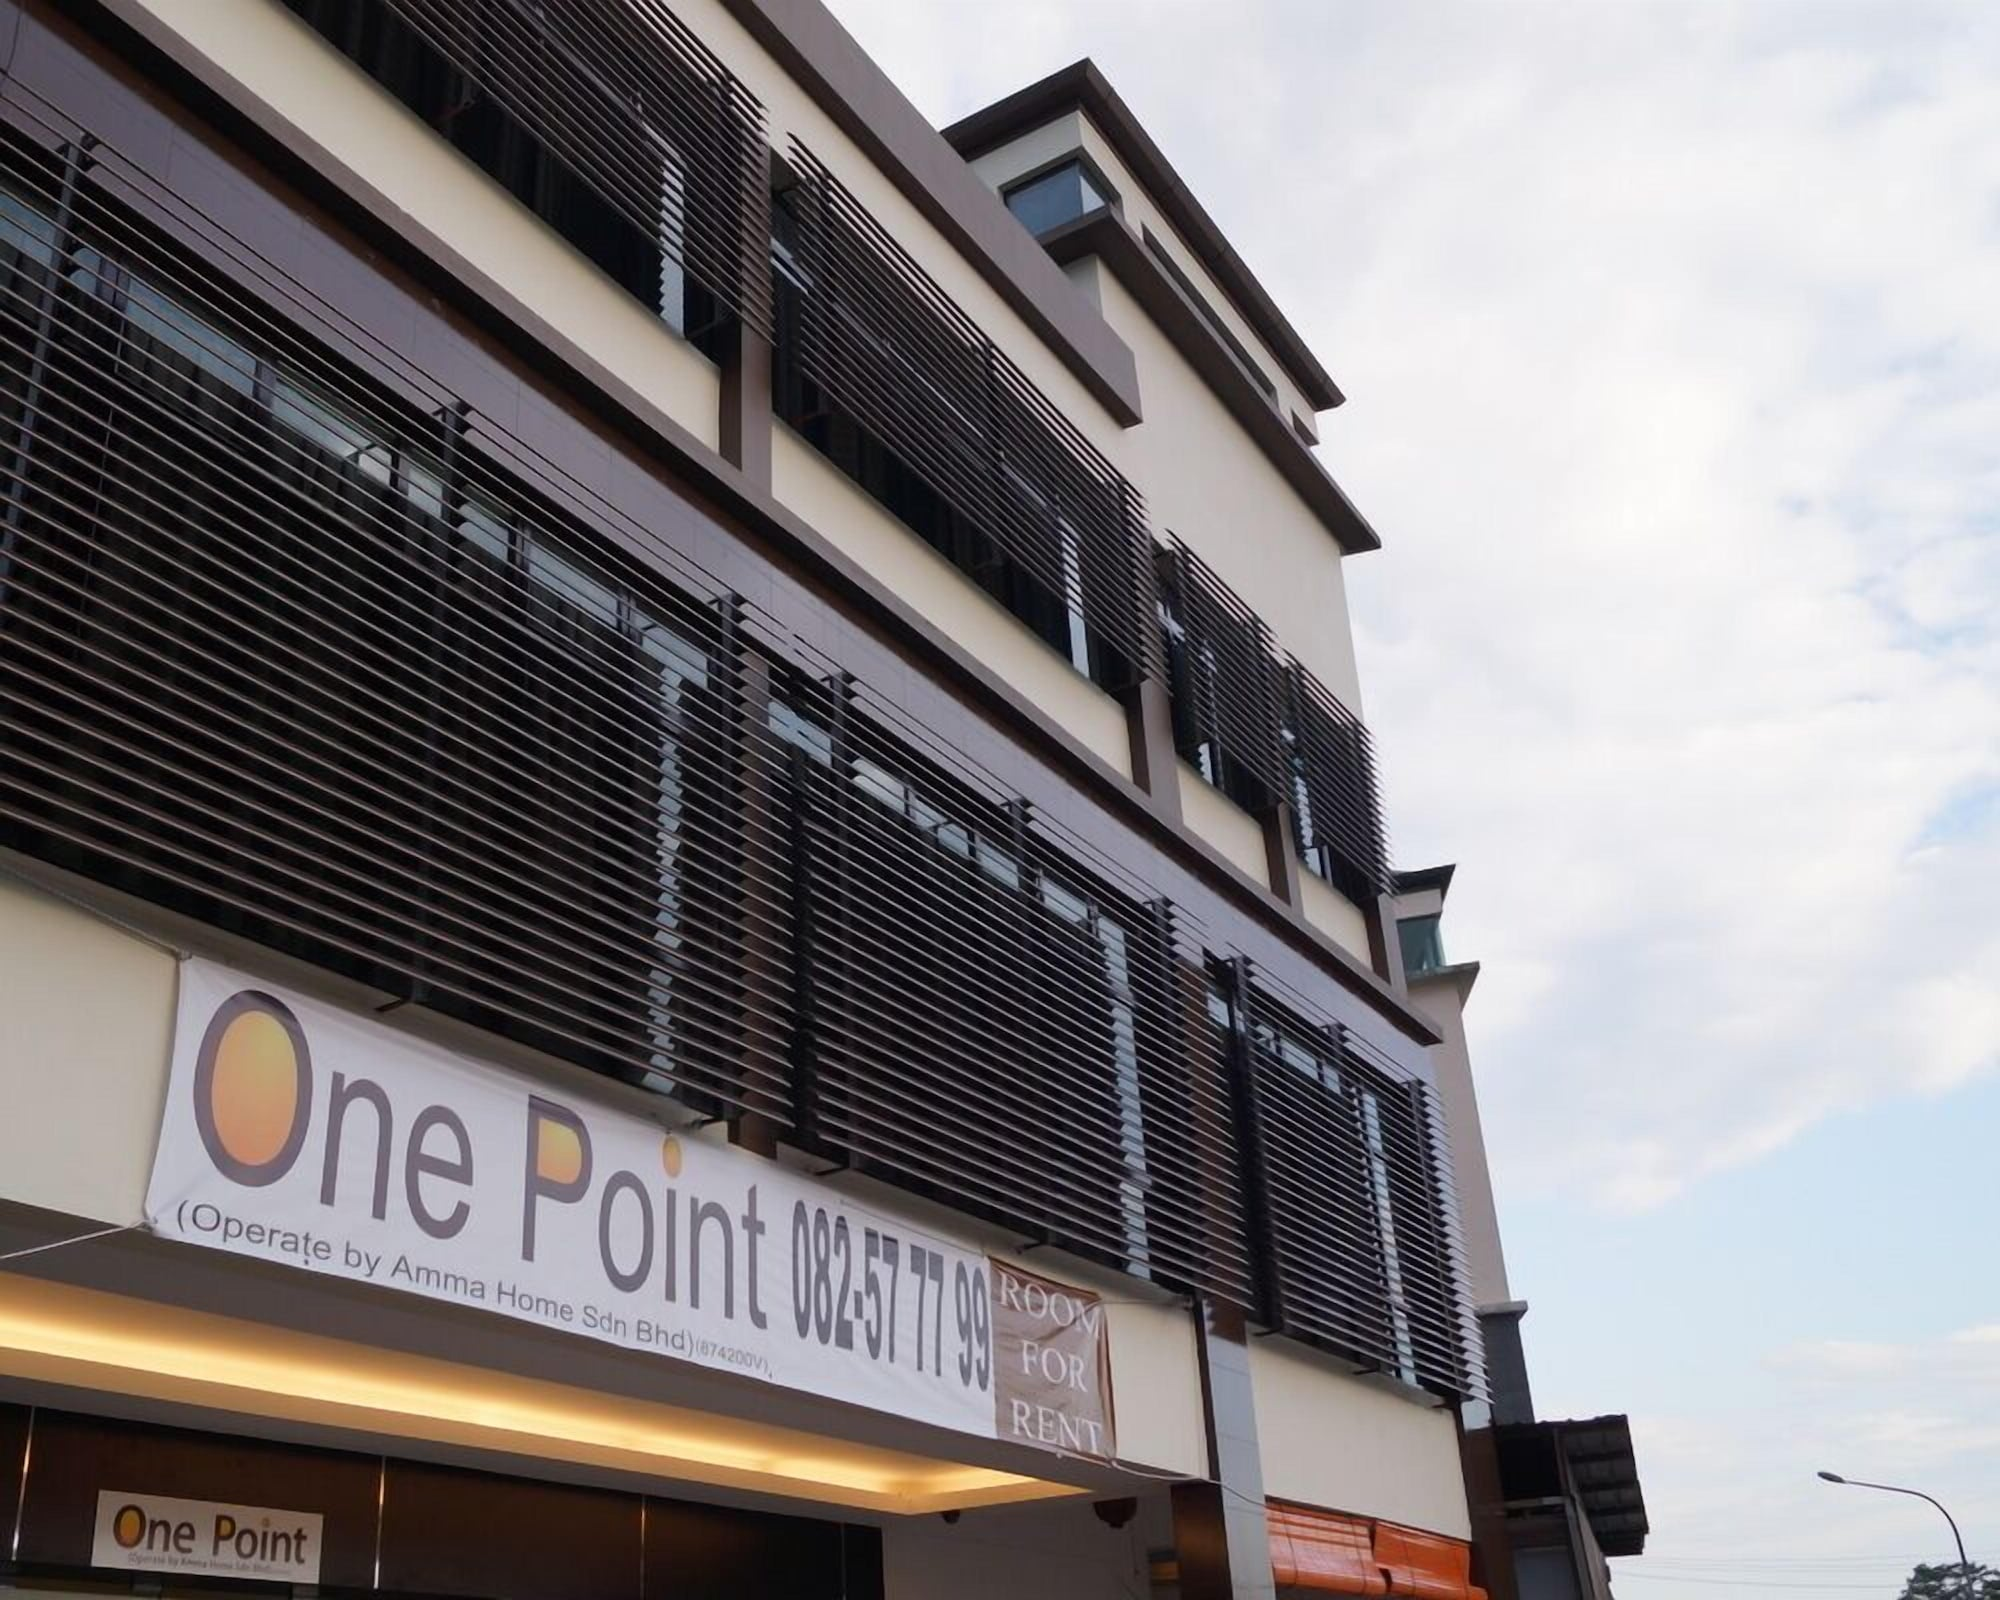 One Point Hotel - RH Plaza, Kuching